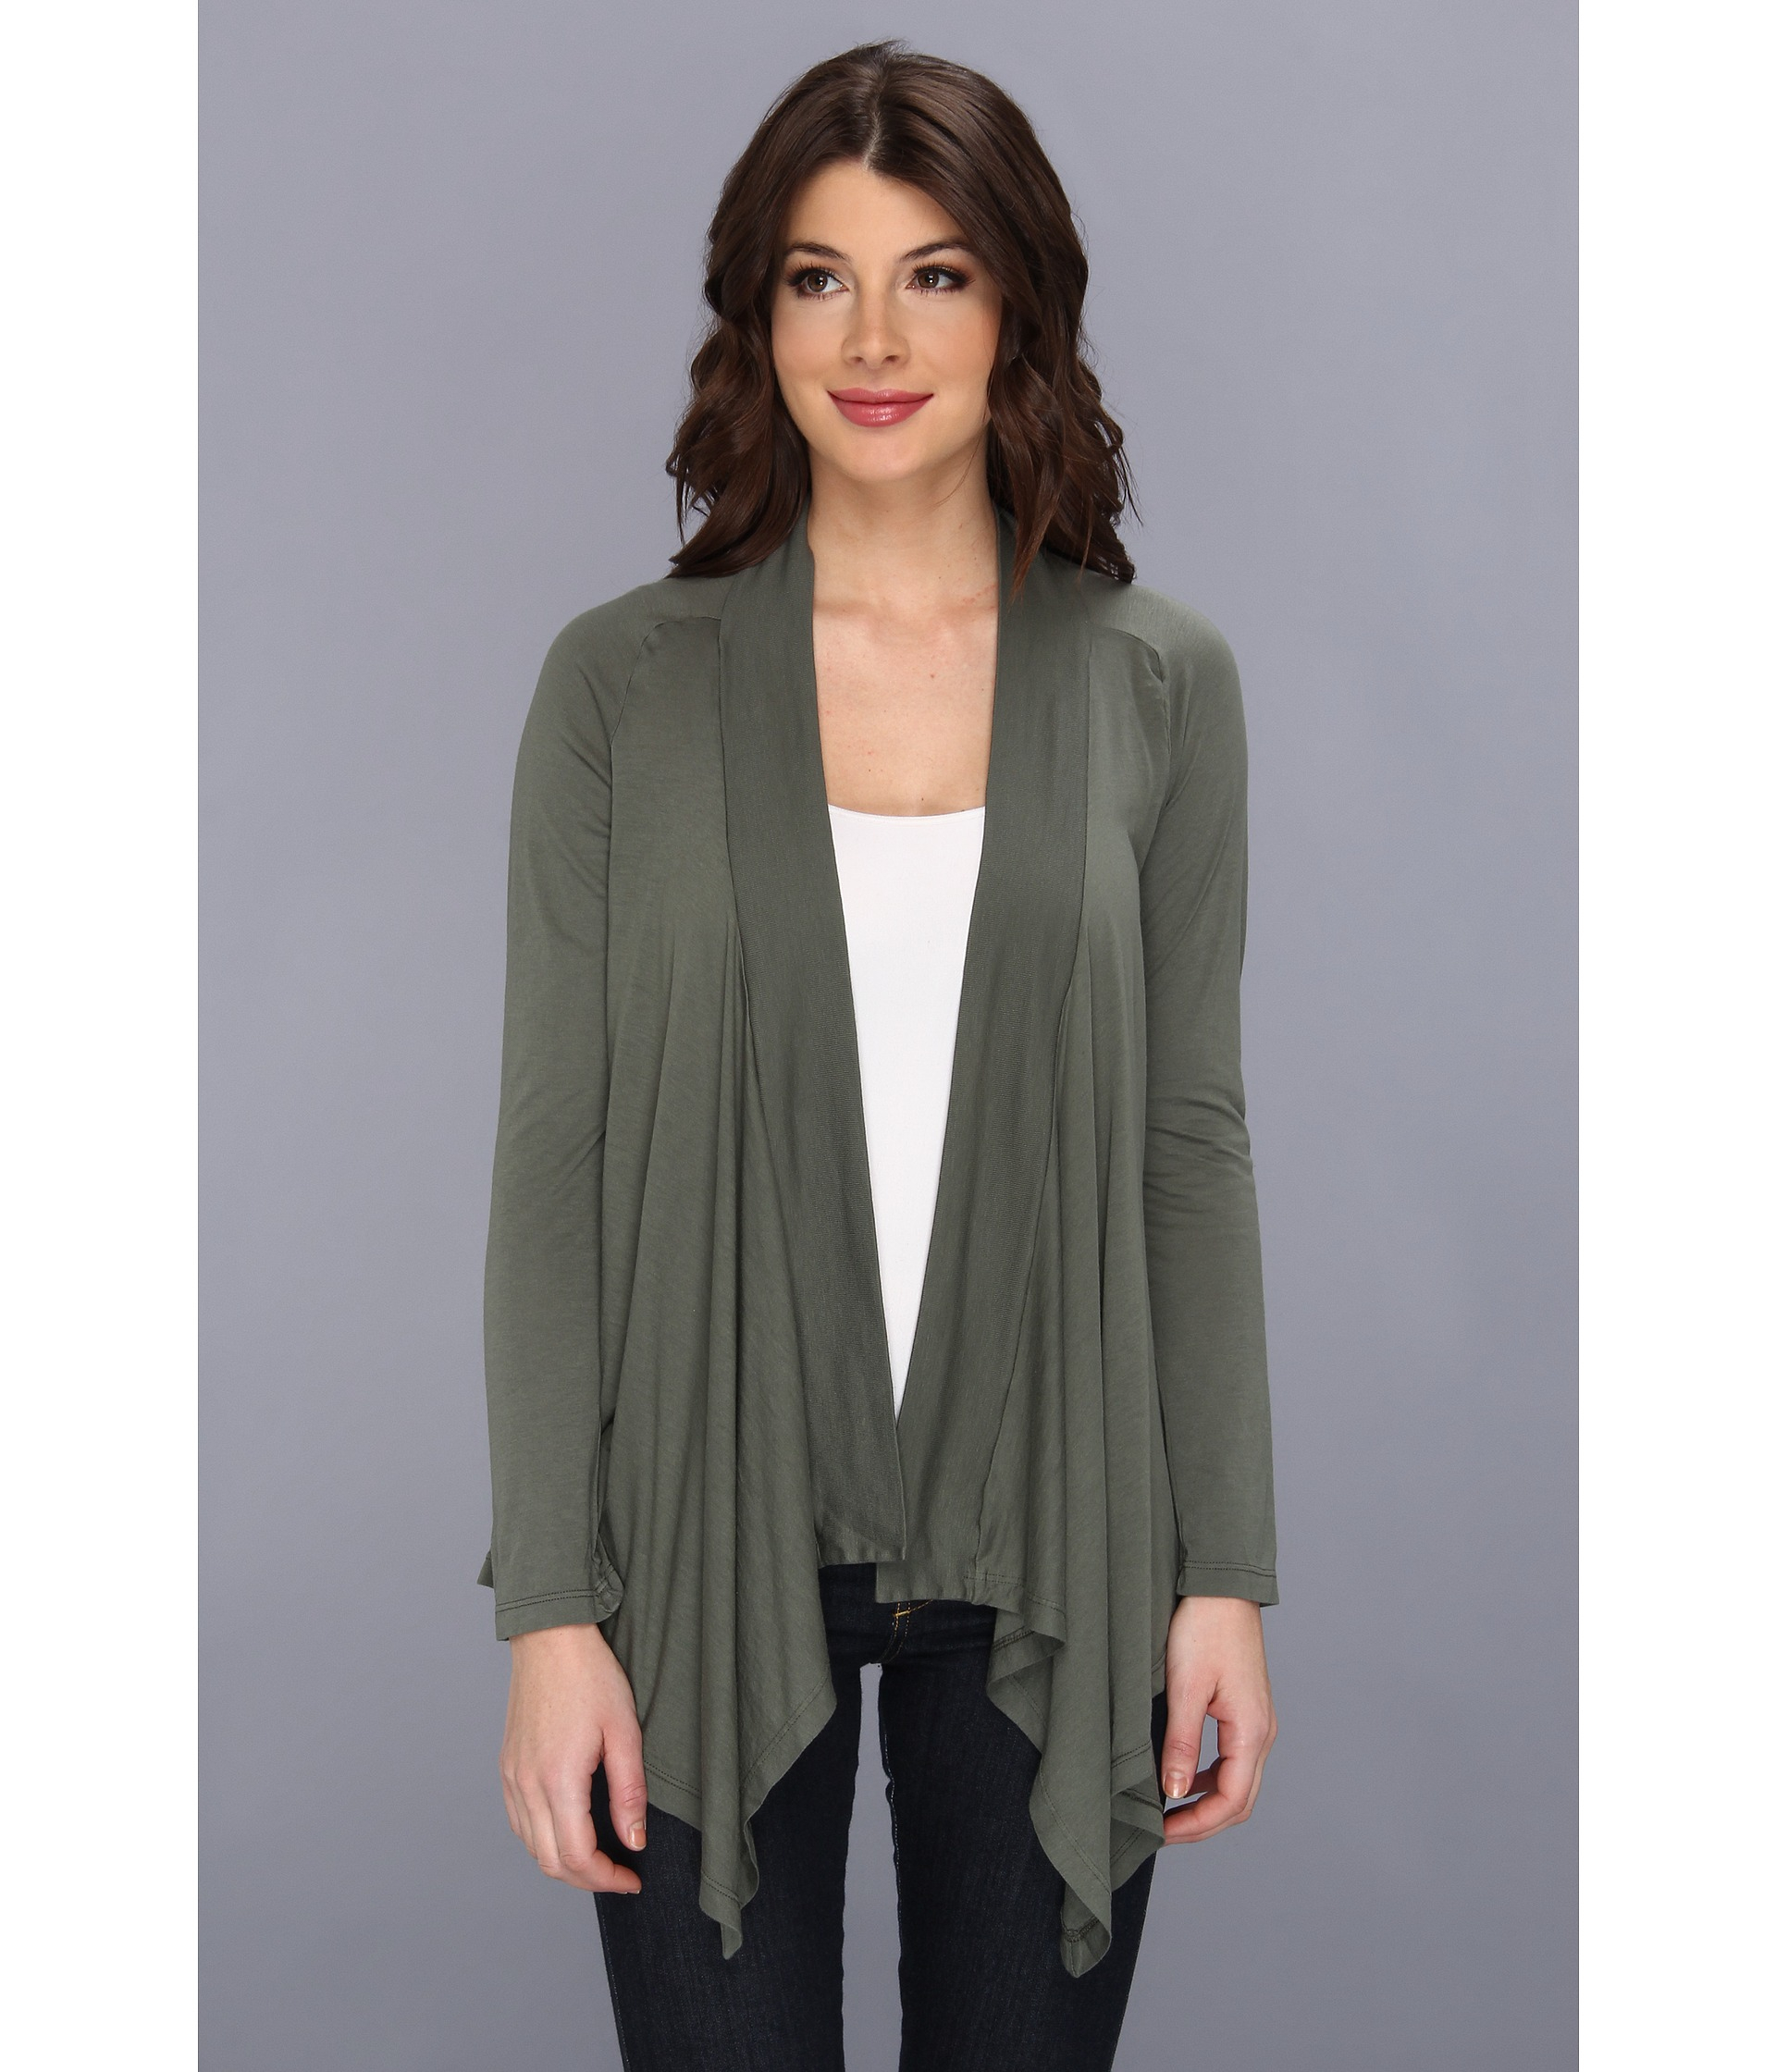 splendid drape have p c very cardigan drapes modern sweaters jersey musthave vqszxpo a light womens must wardrobe